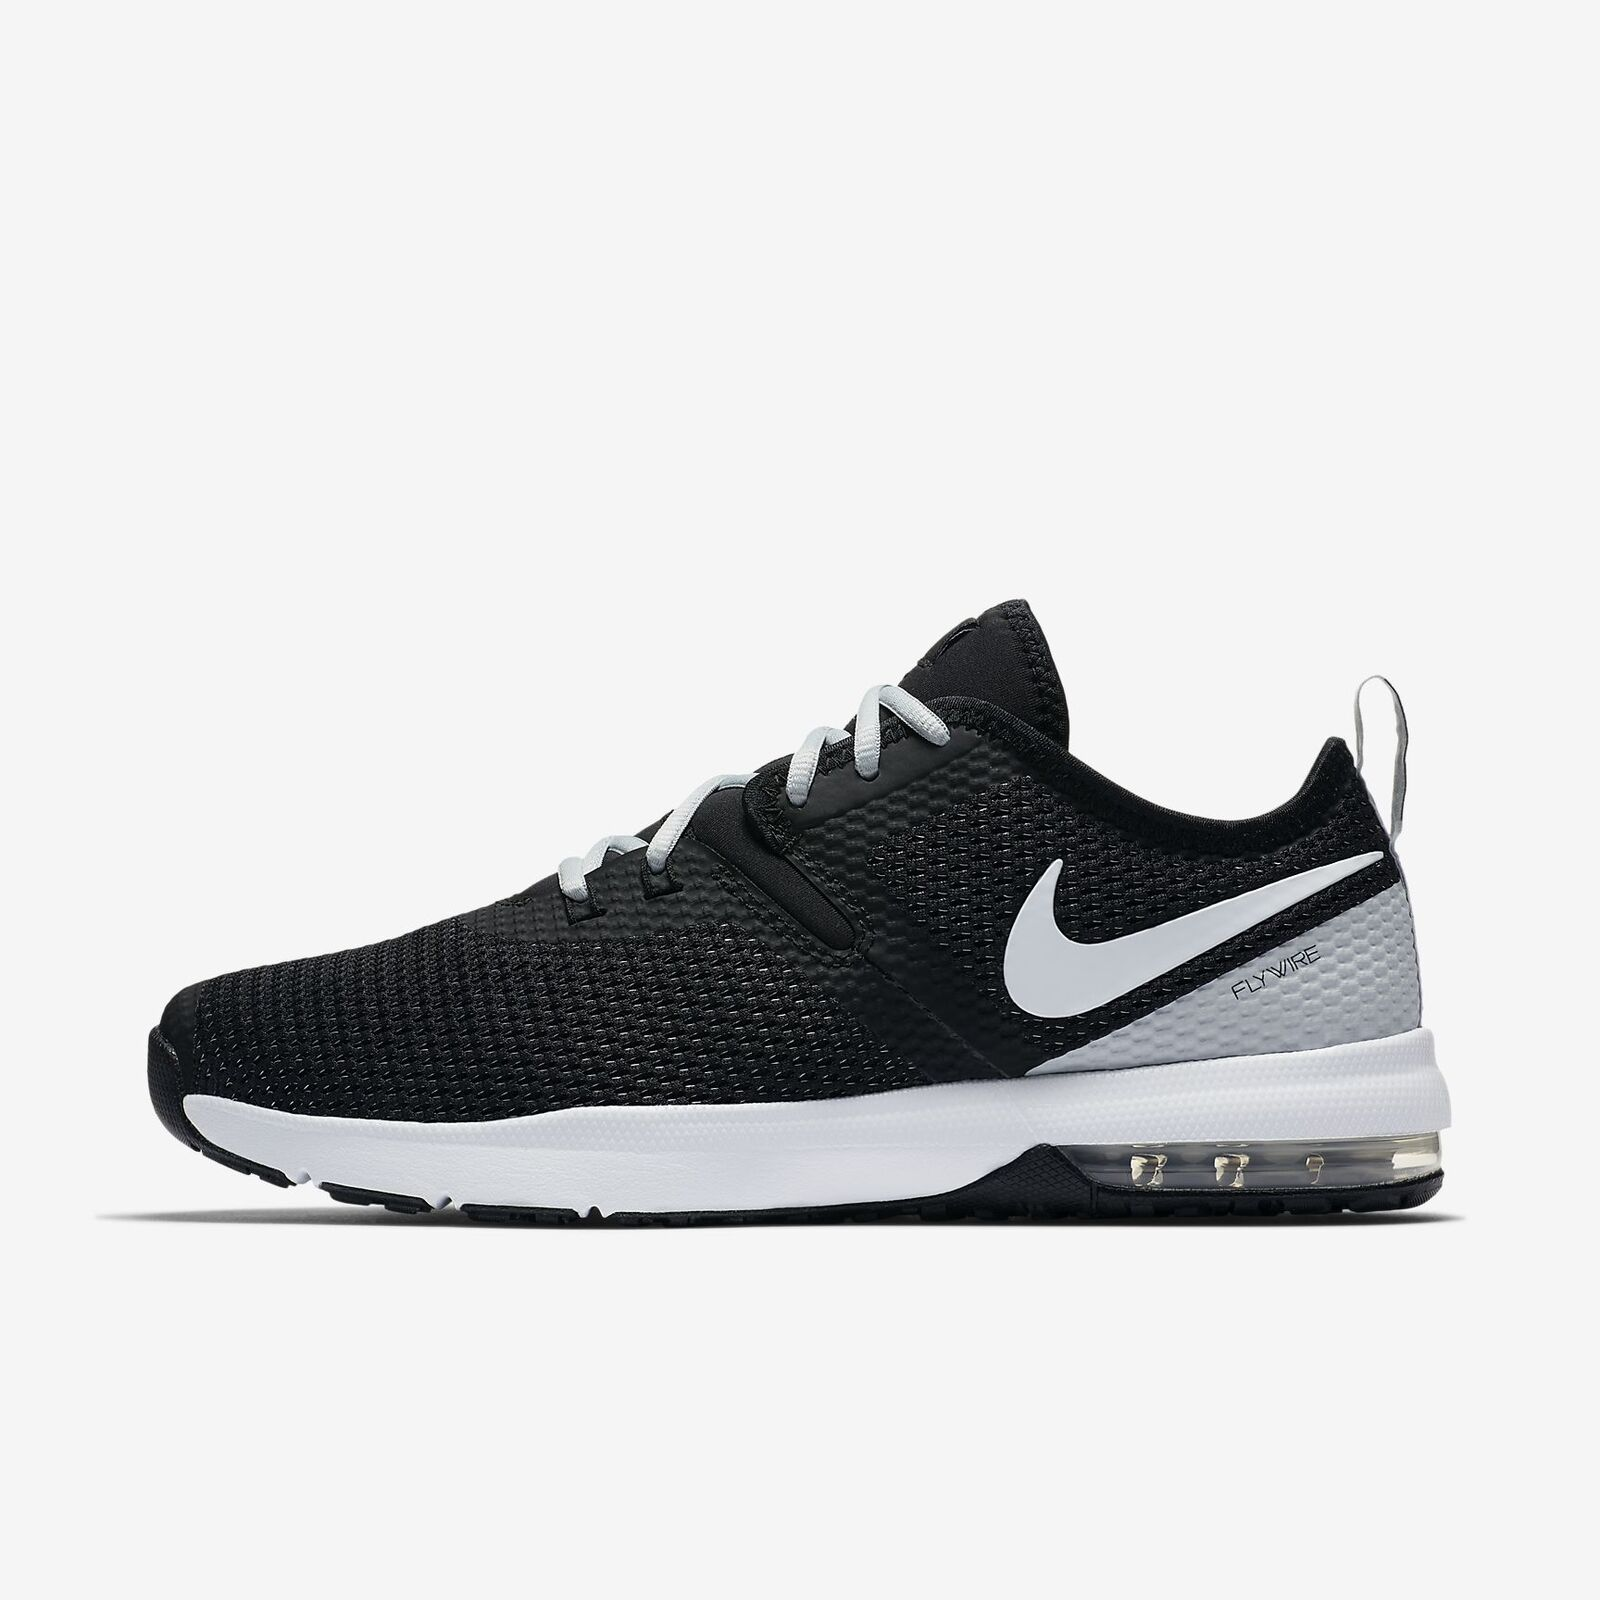 Men's Nike Air Max Typha 2 Oakland Raiders shoes Sneakers Athletic Trainers